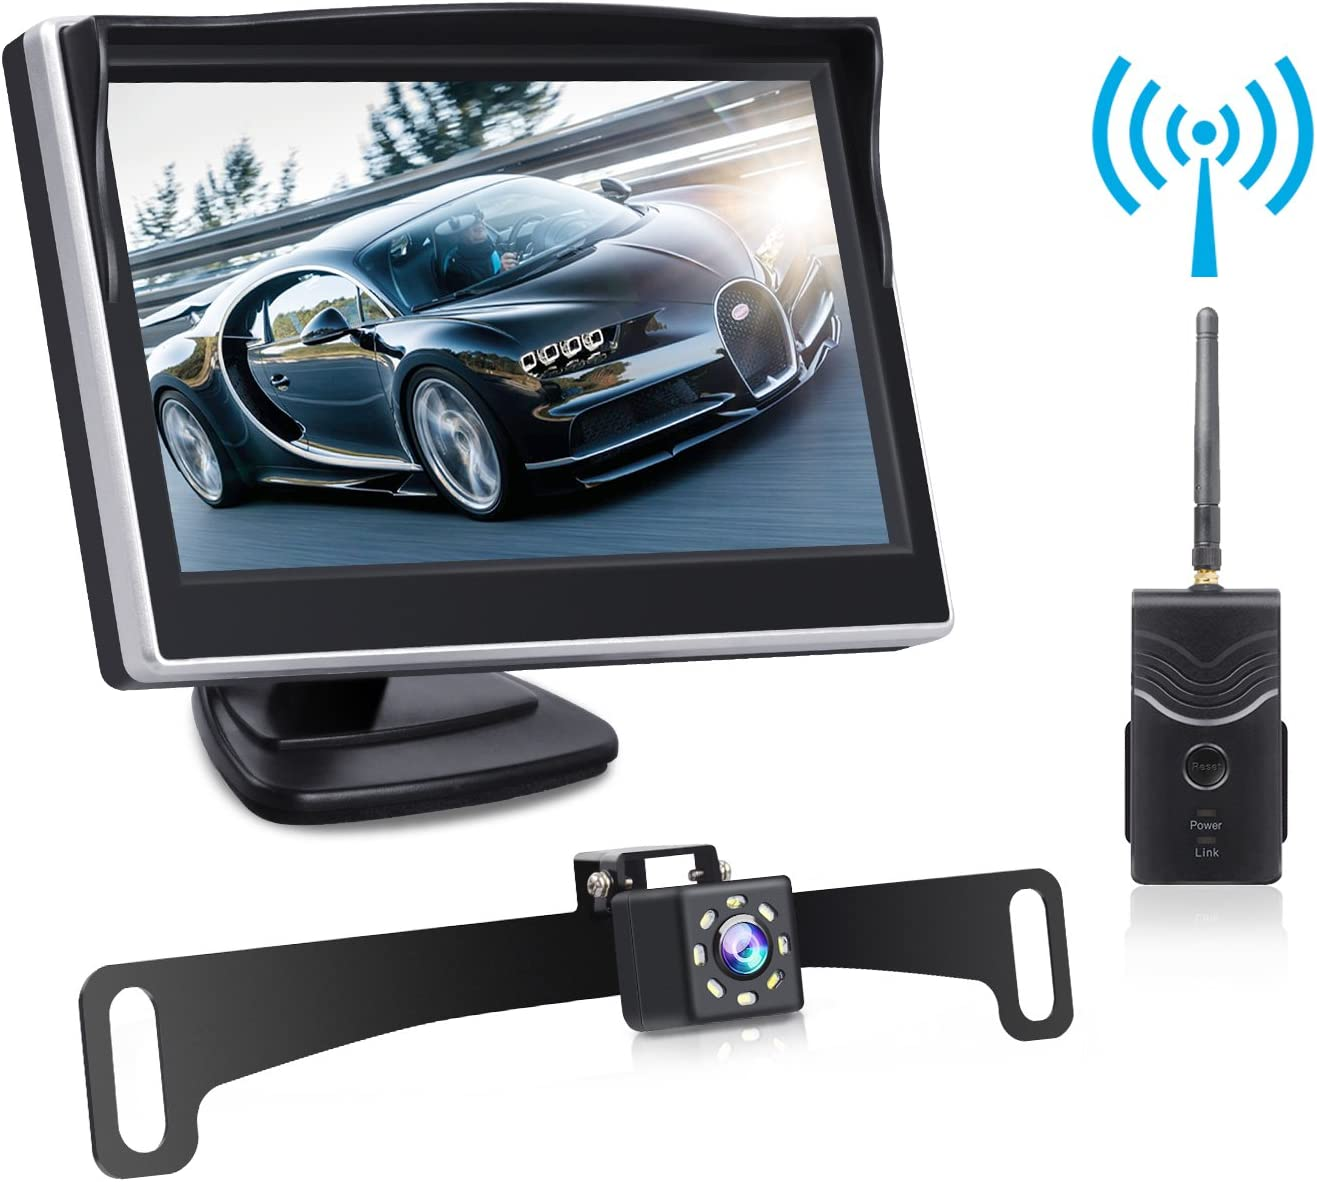 Yakry Windshield Mount Suction Cup Mount Bracket for 7 Inch Display Monitor Rear View Backup Camera Monitor Display Fix The Monitor on Windshield